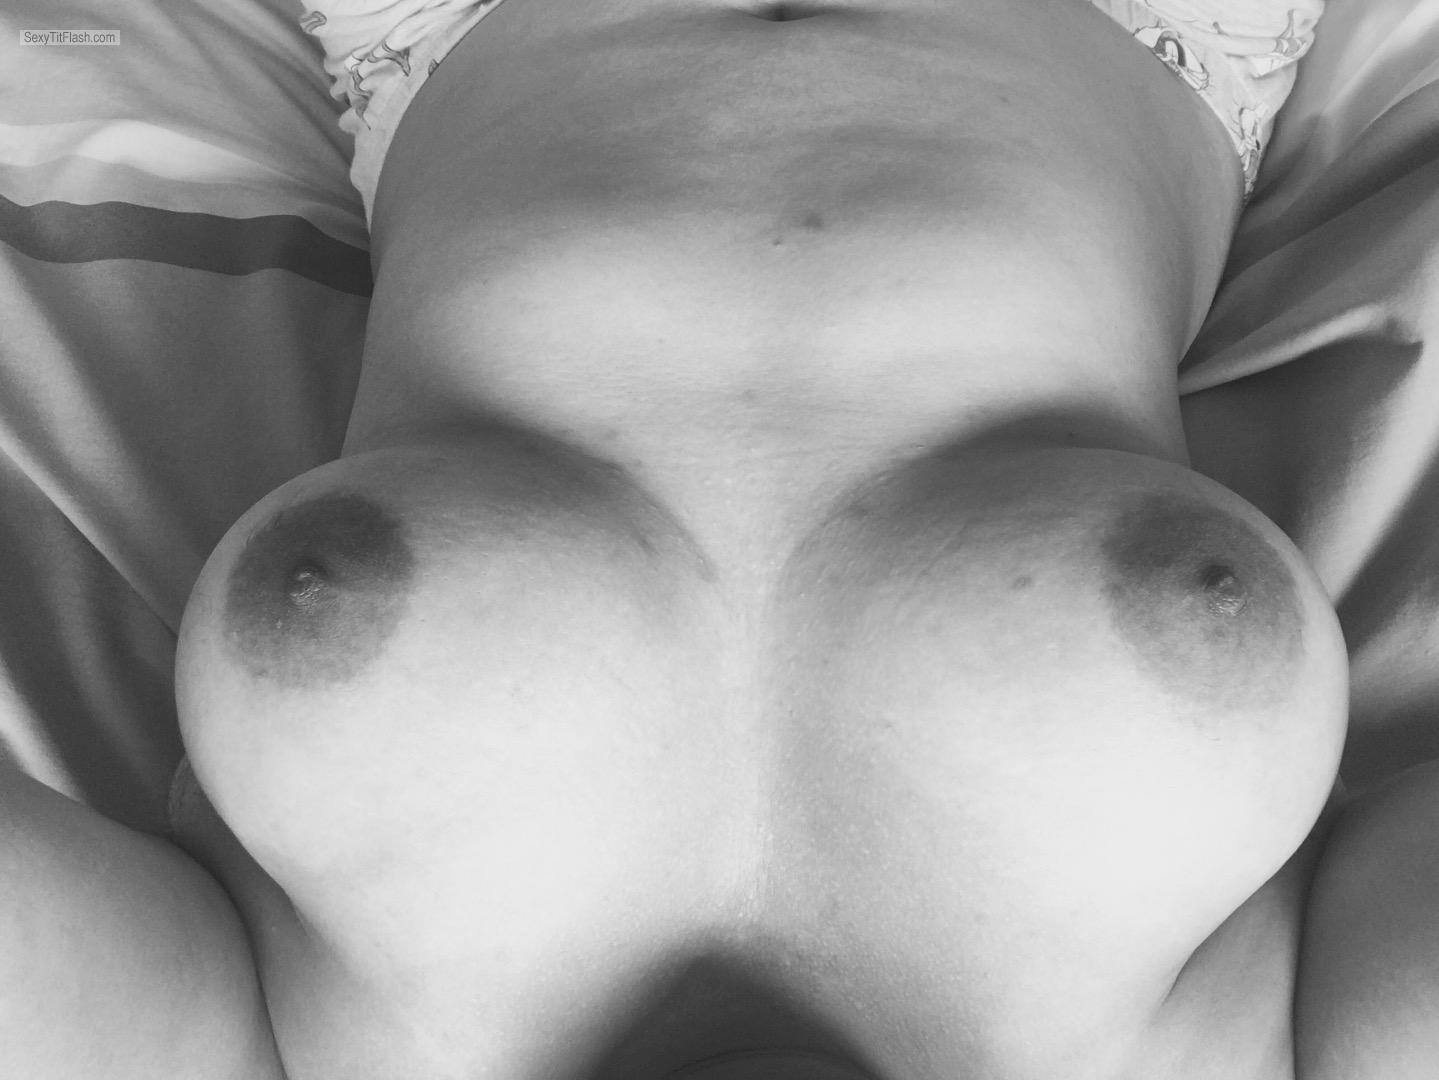 My Big Tits Topless Selfie by Yum